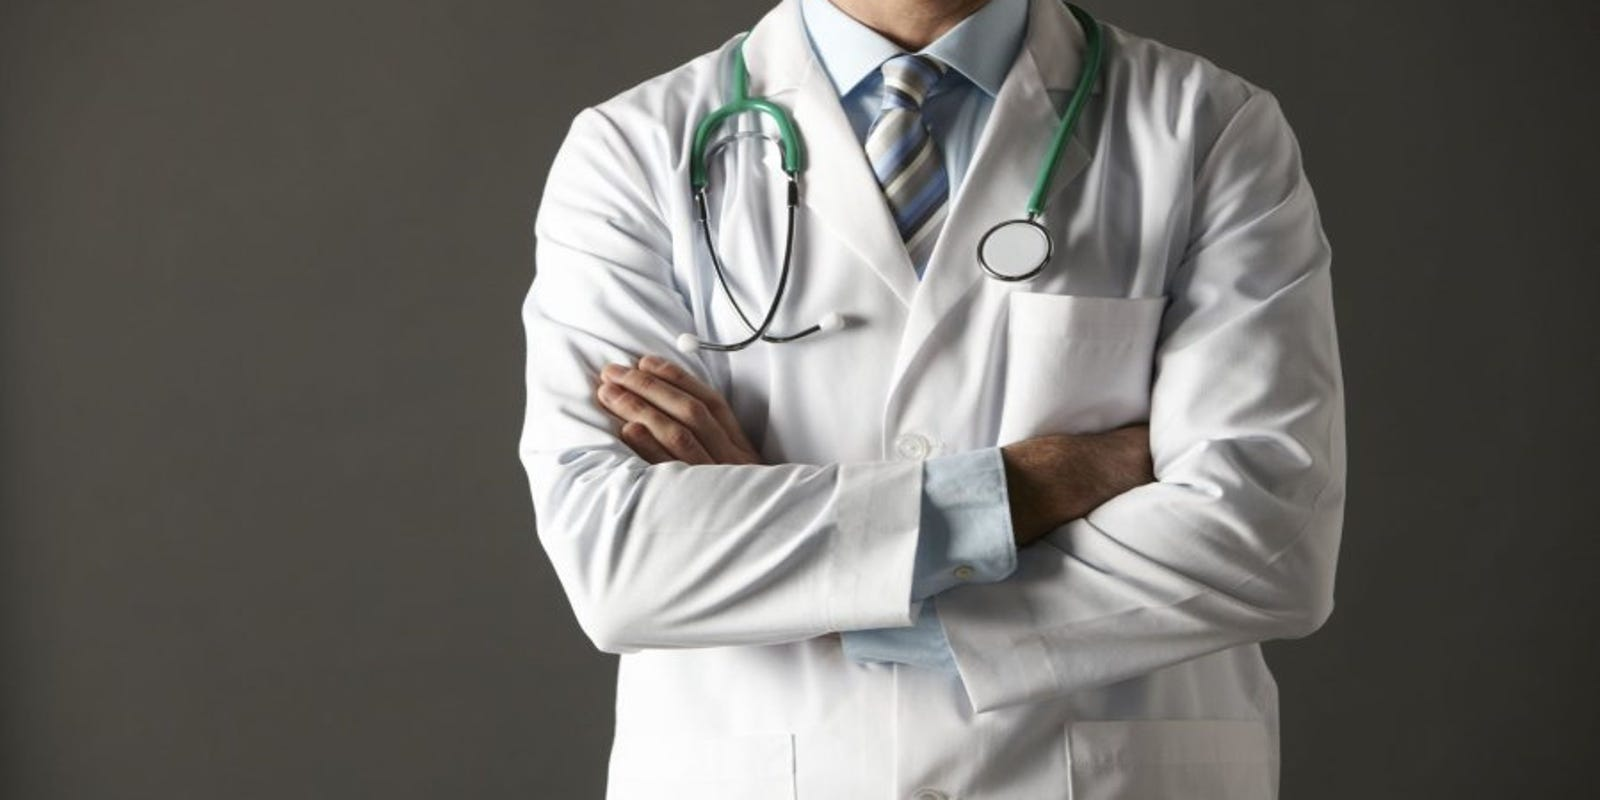 Area medical groups graded on care cost